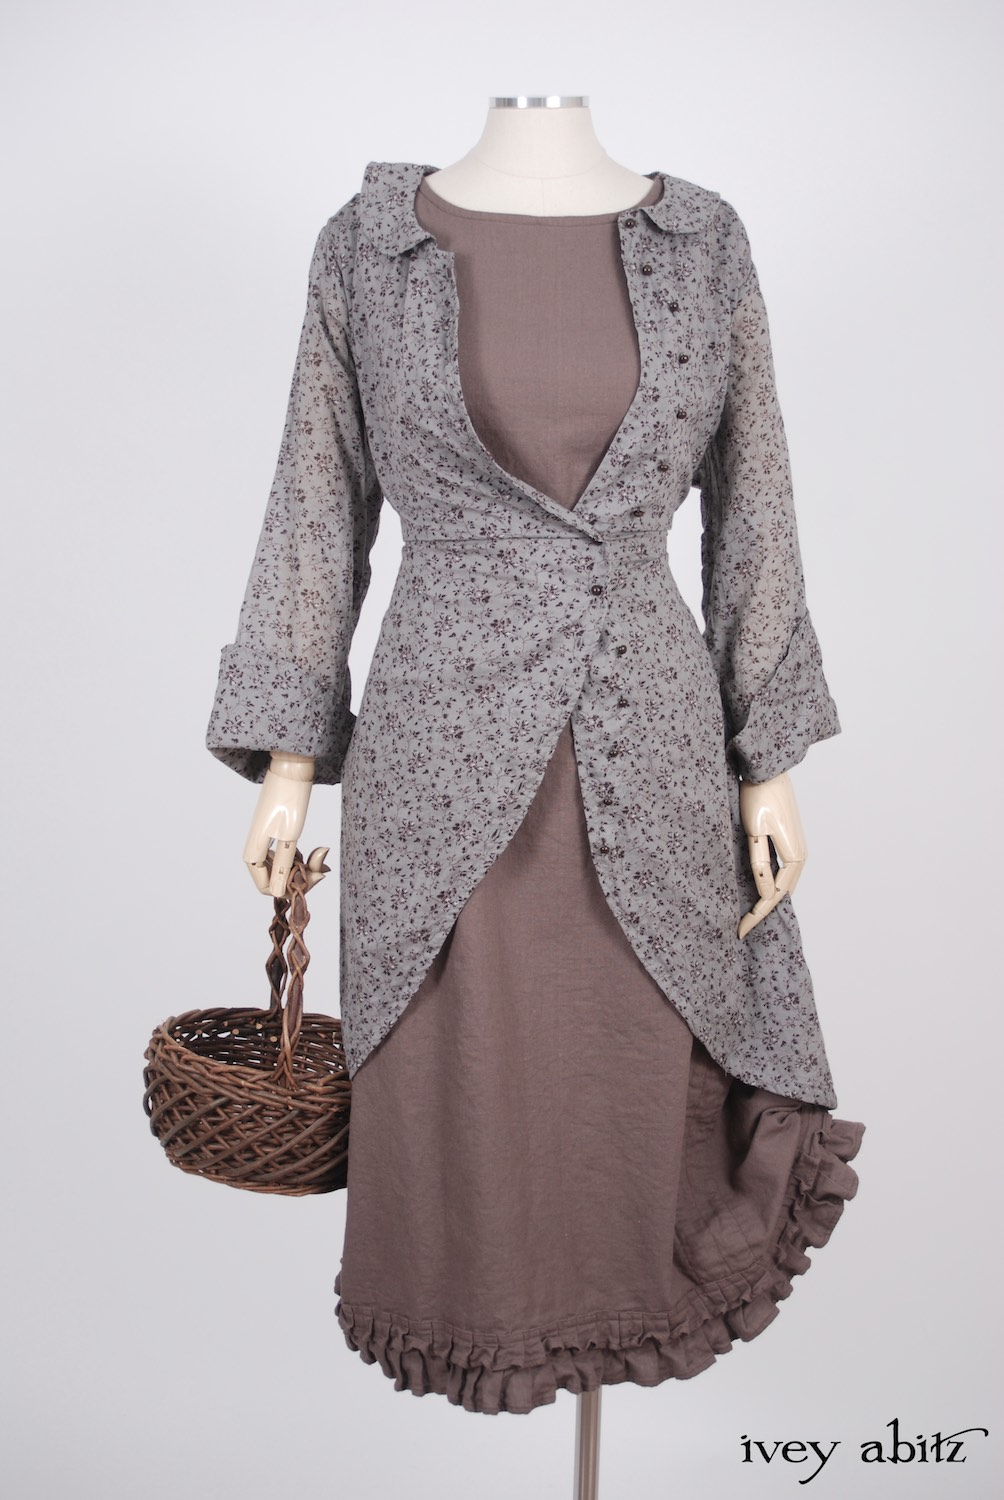 Ivey Abitz - Arthur Hill Jacket in Feather Brown Floral Cotton Voile  - Canterbury Frock in Hummingbird Washed Linen, High Water Length